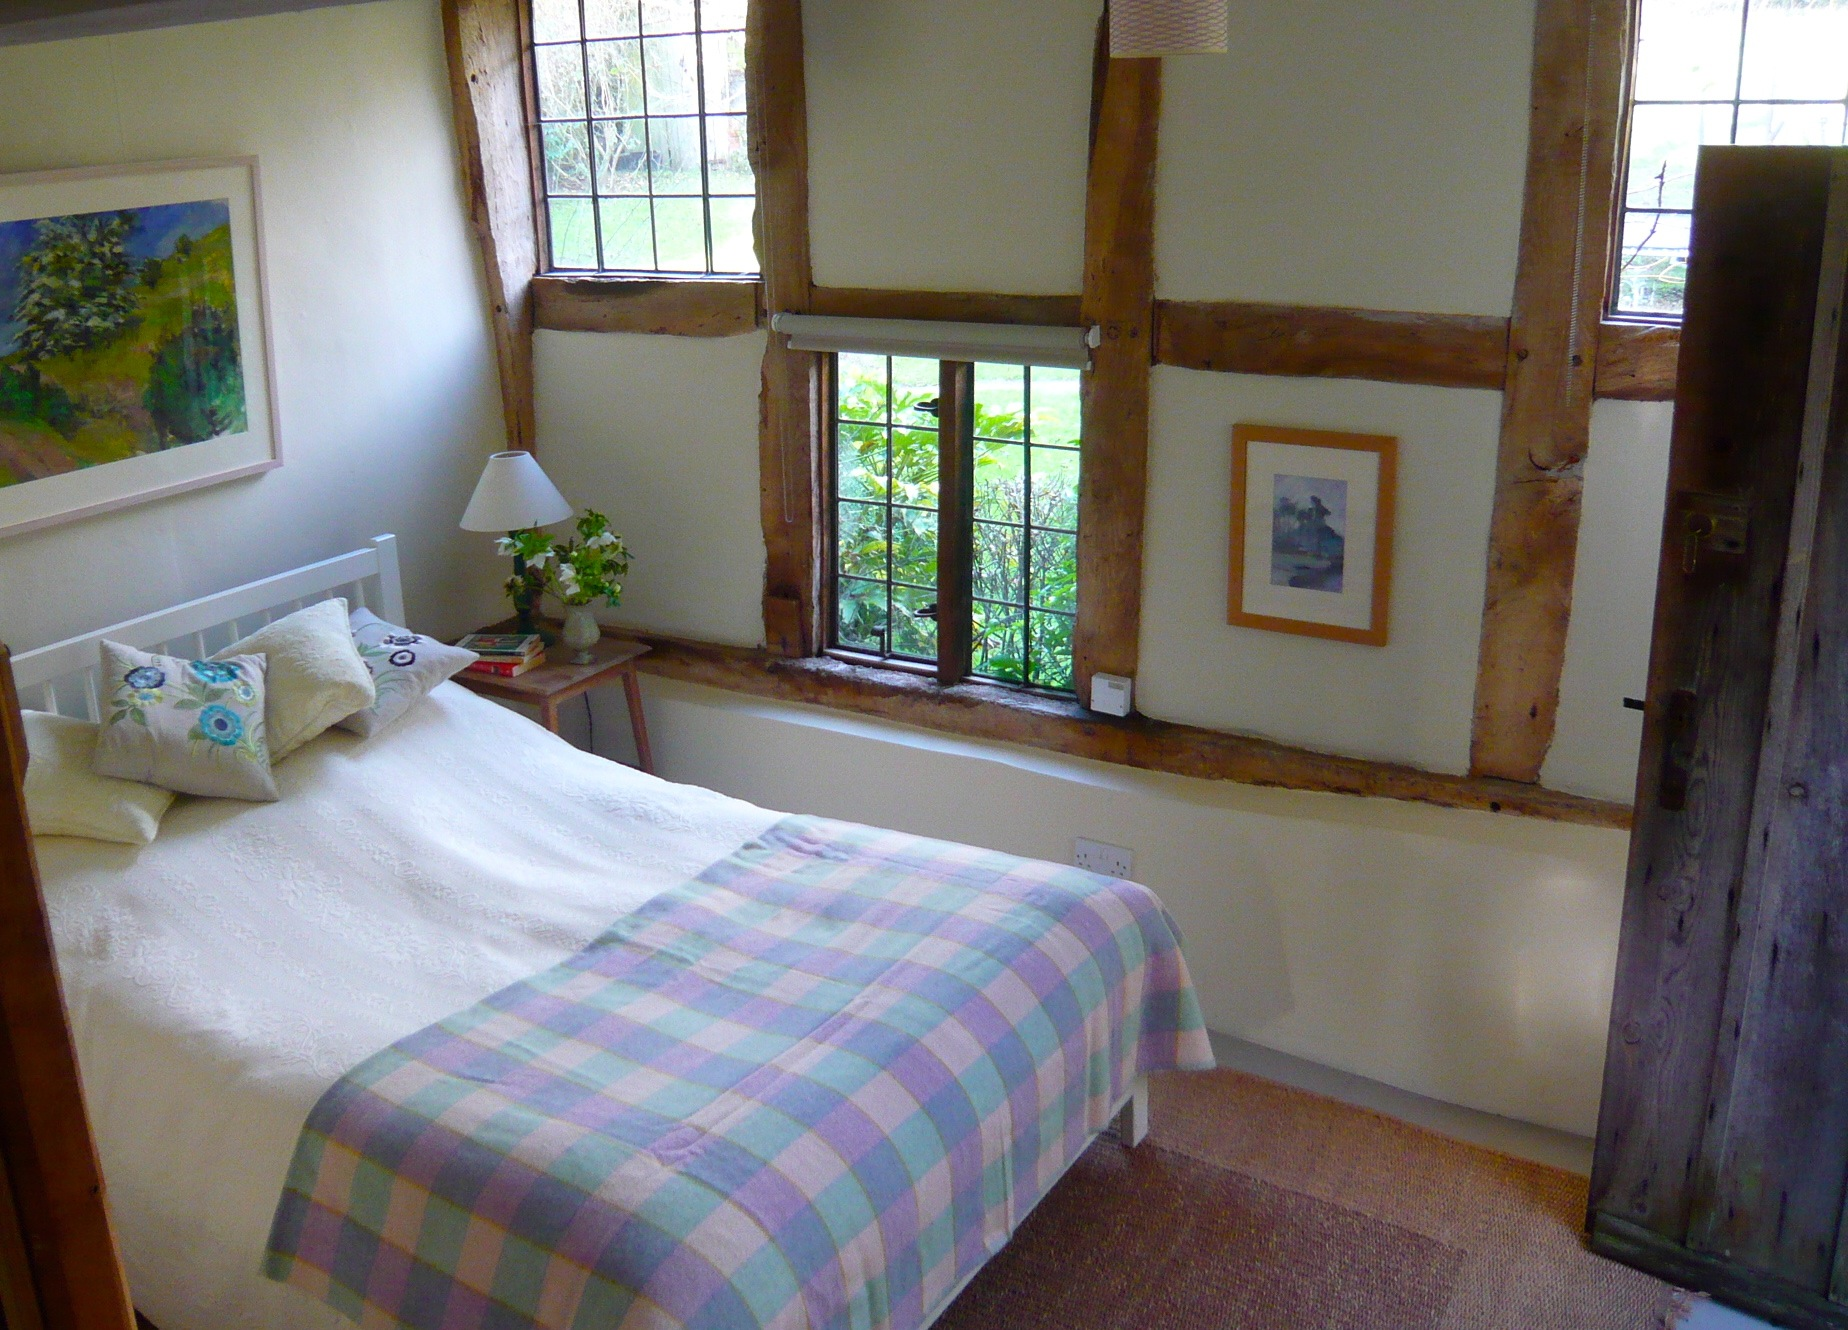 The annexe, bed area